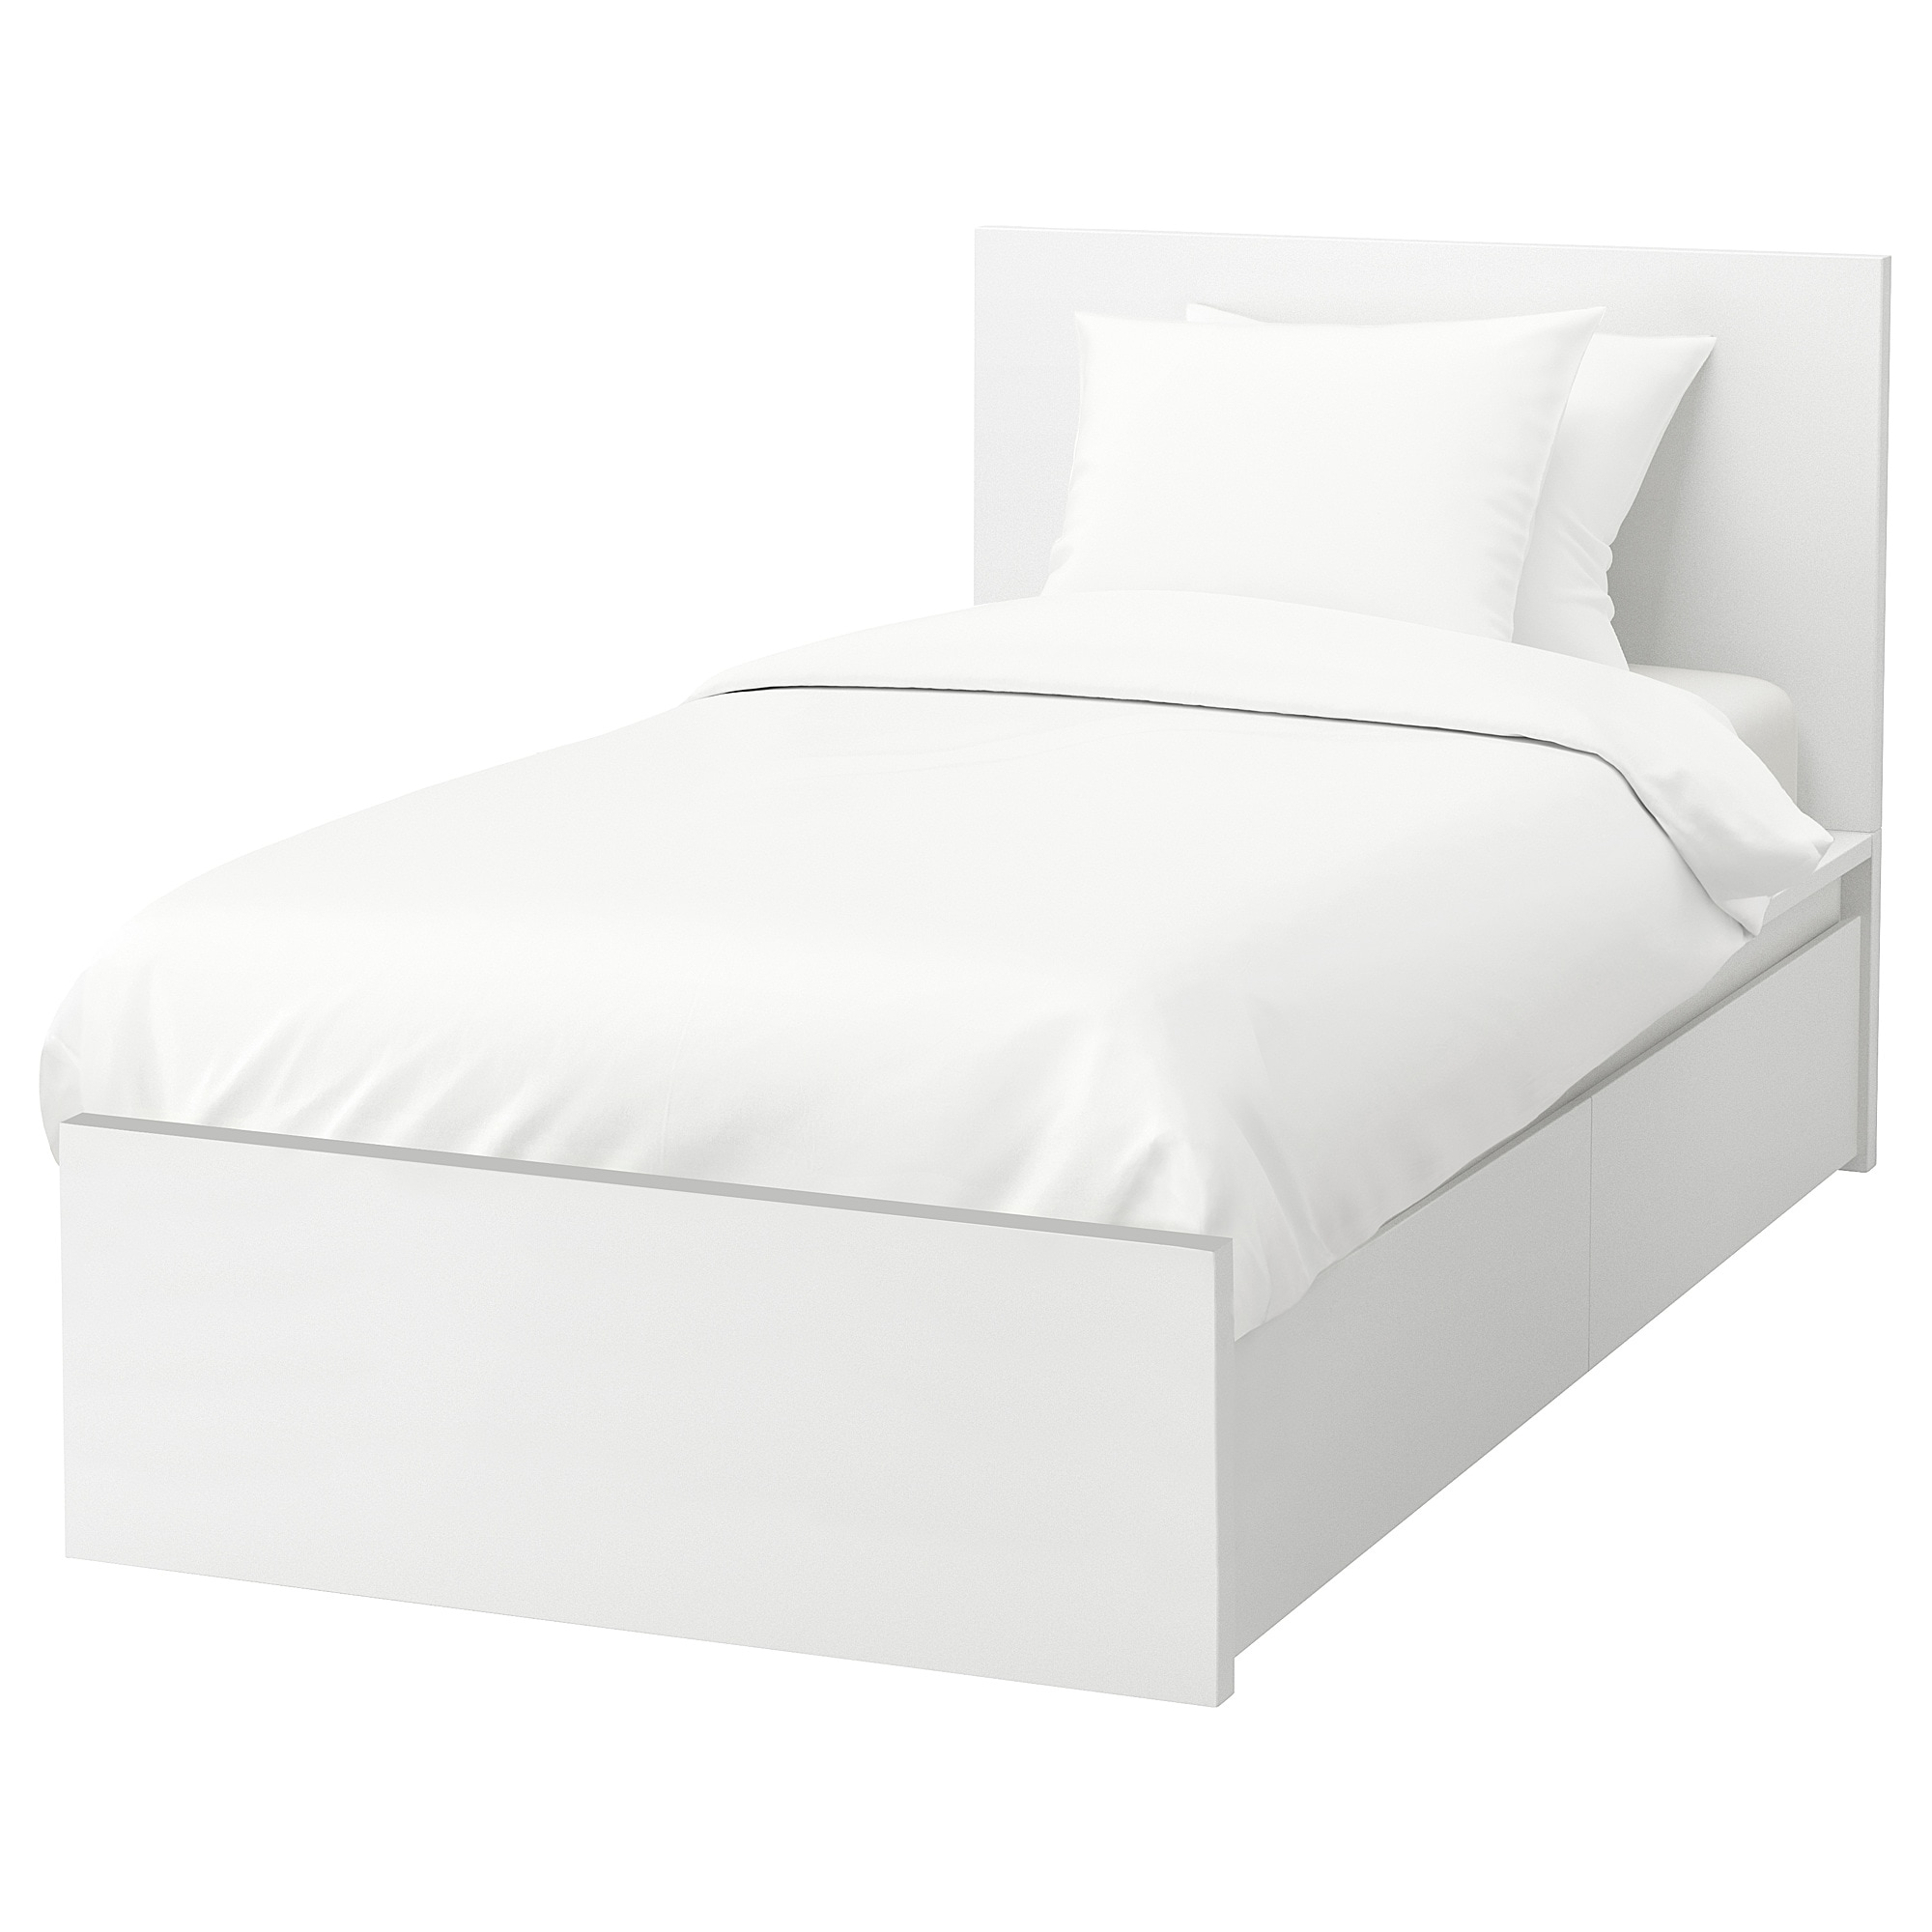 MALM High bed frame/2 storage boxes - Luröy, white - IKEA